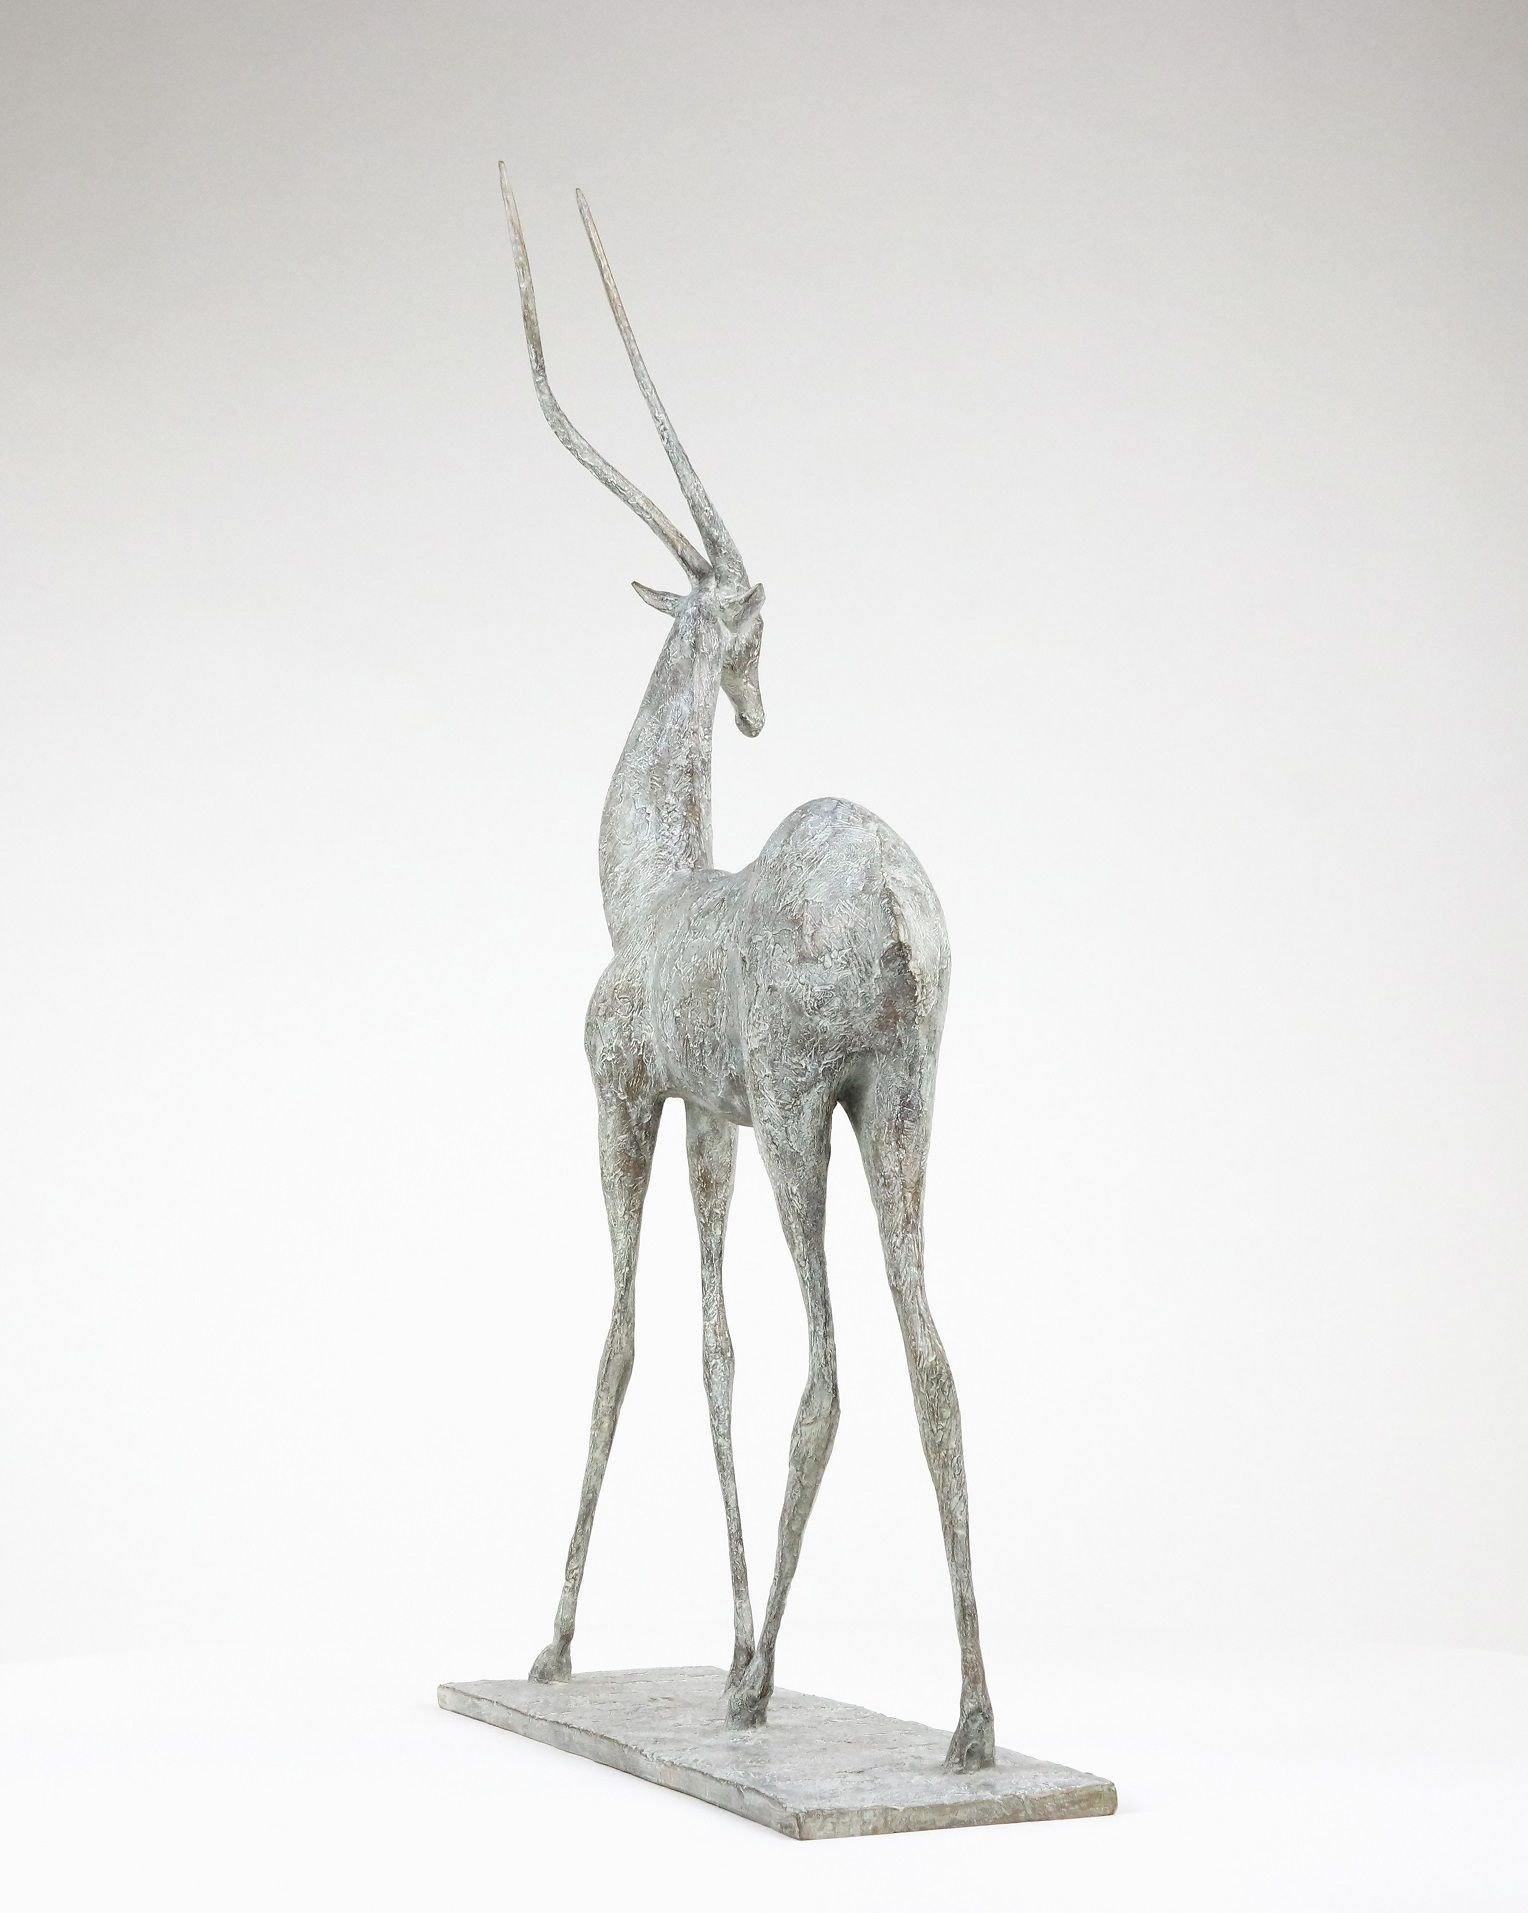 Gazelle I,Pierre Yermia,Sculpture, detail 2